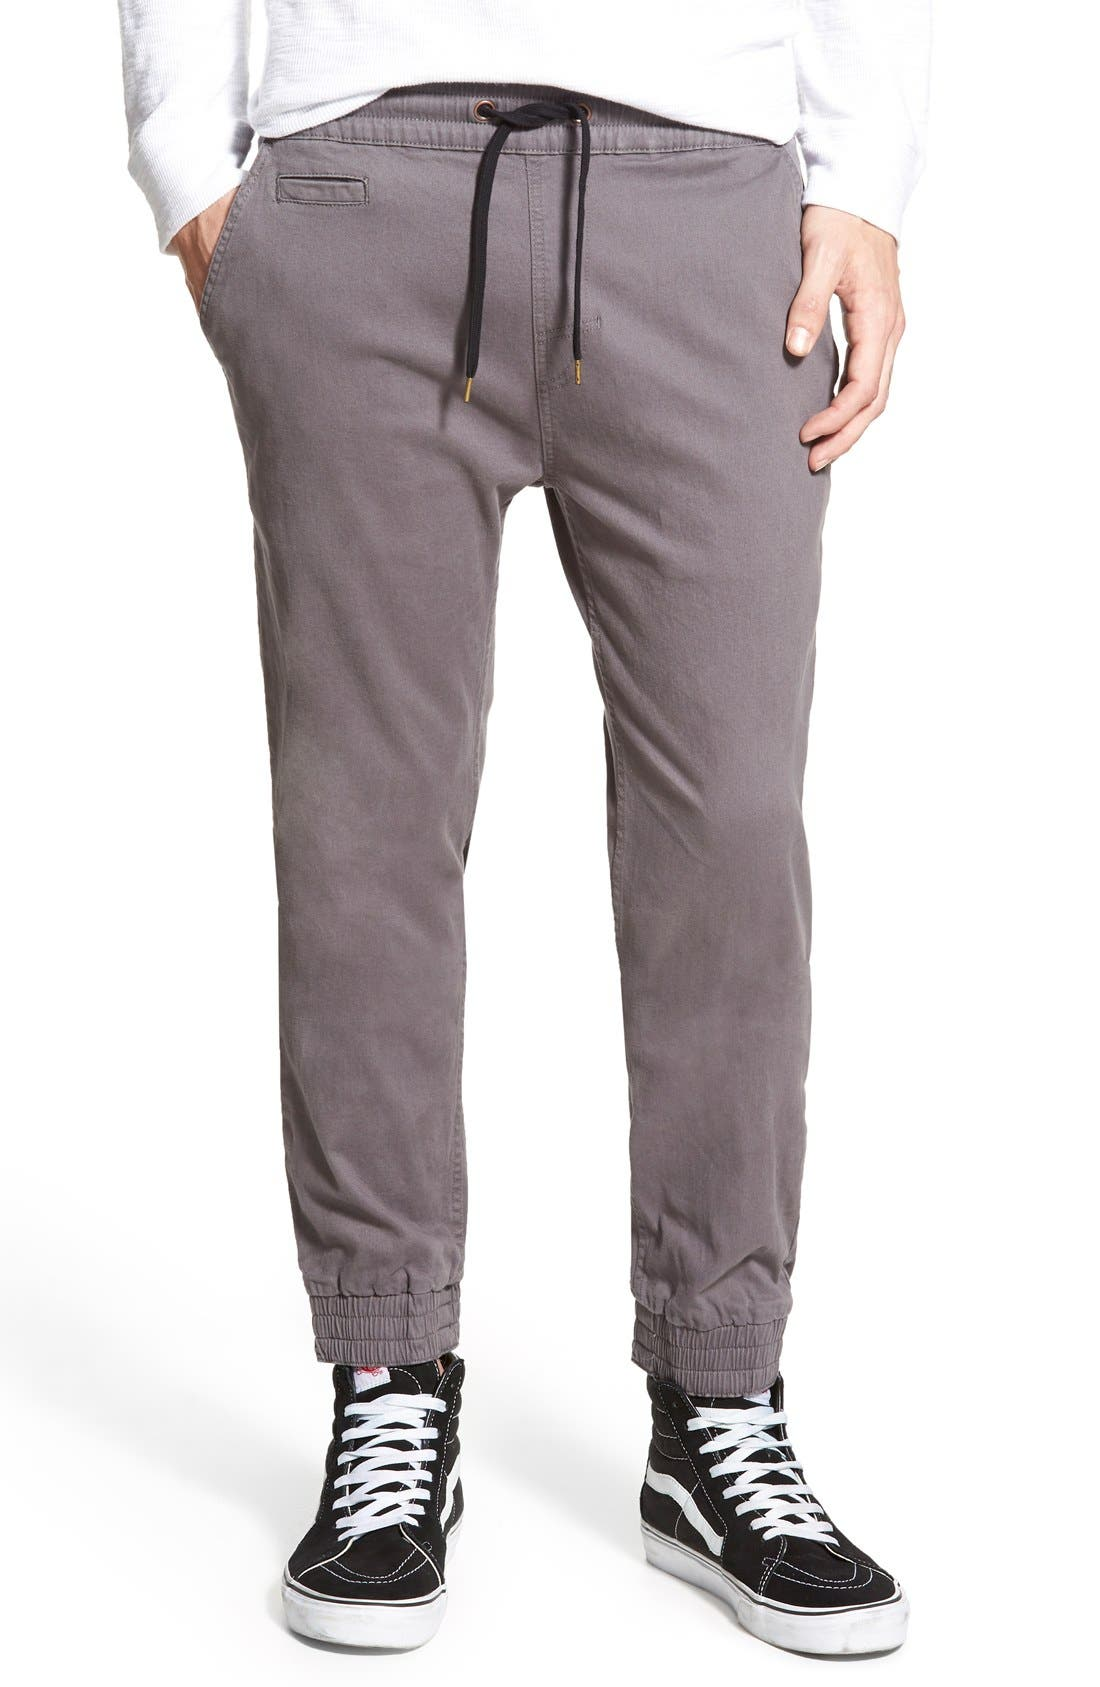 'Denny' Woven Jogger Pants,                             Main thumbnail 1, color,                             Charcoal